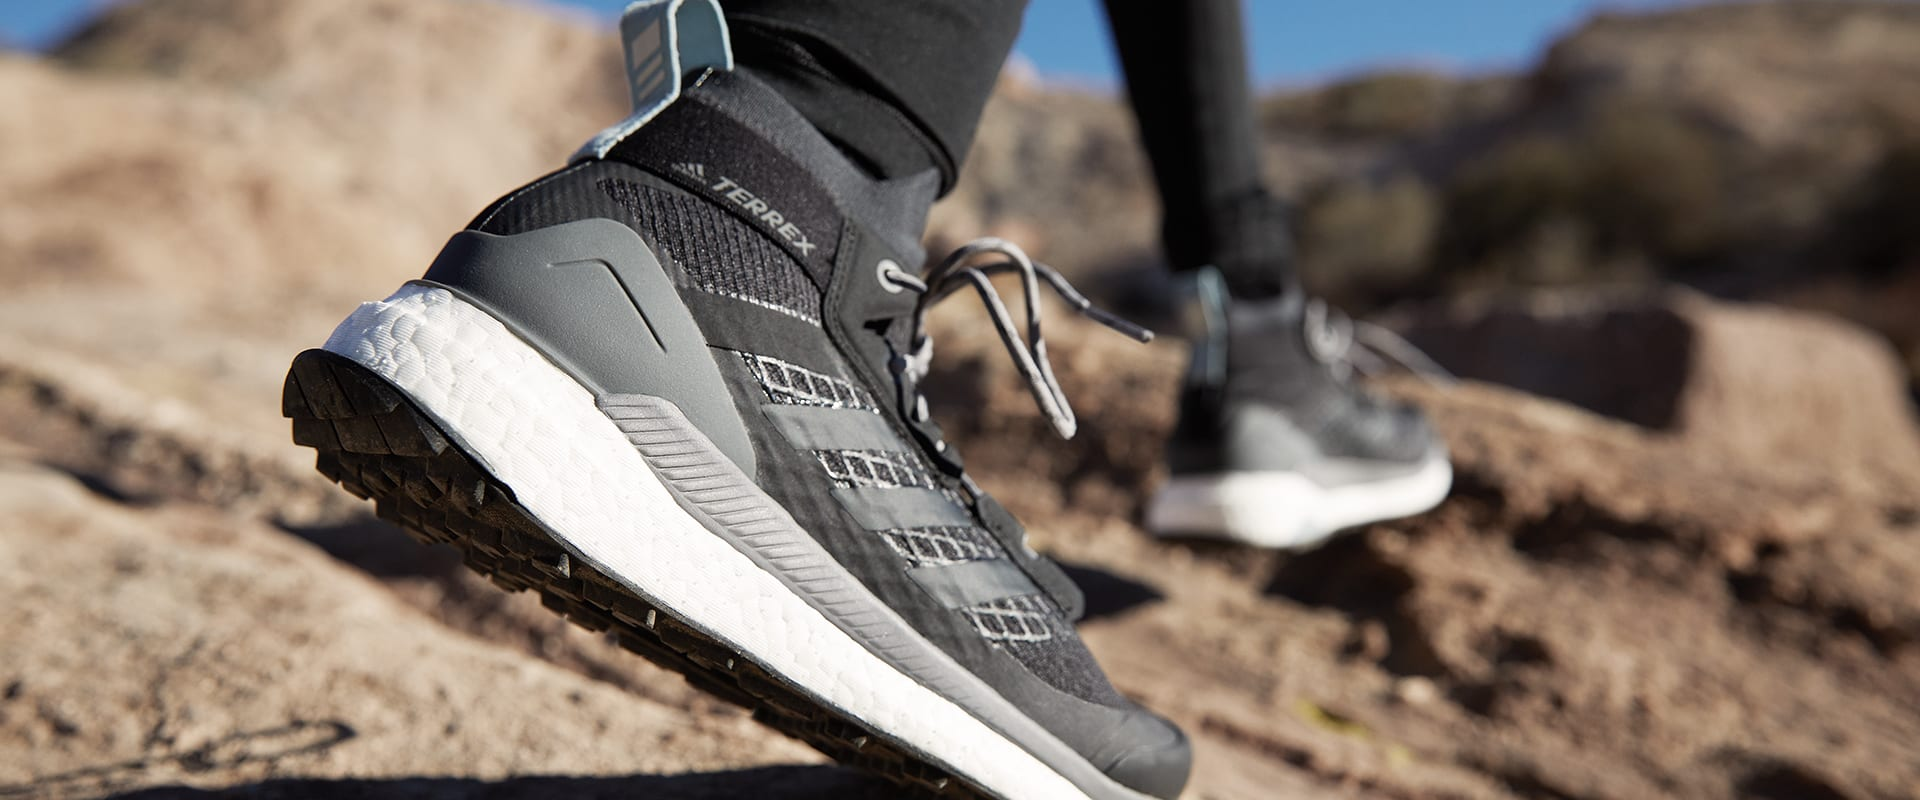 bd6e380764 Get ready to escape the noise in adidas TERREX Free Hiker.